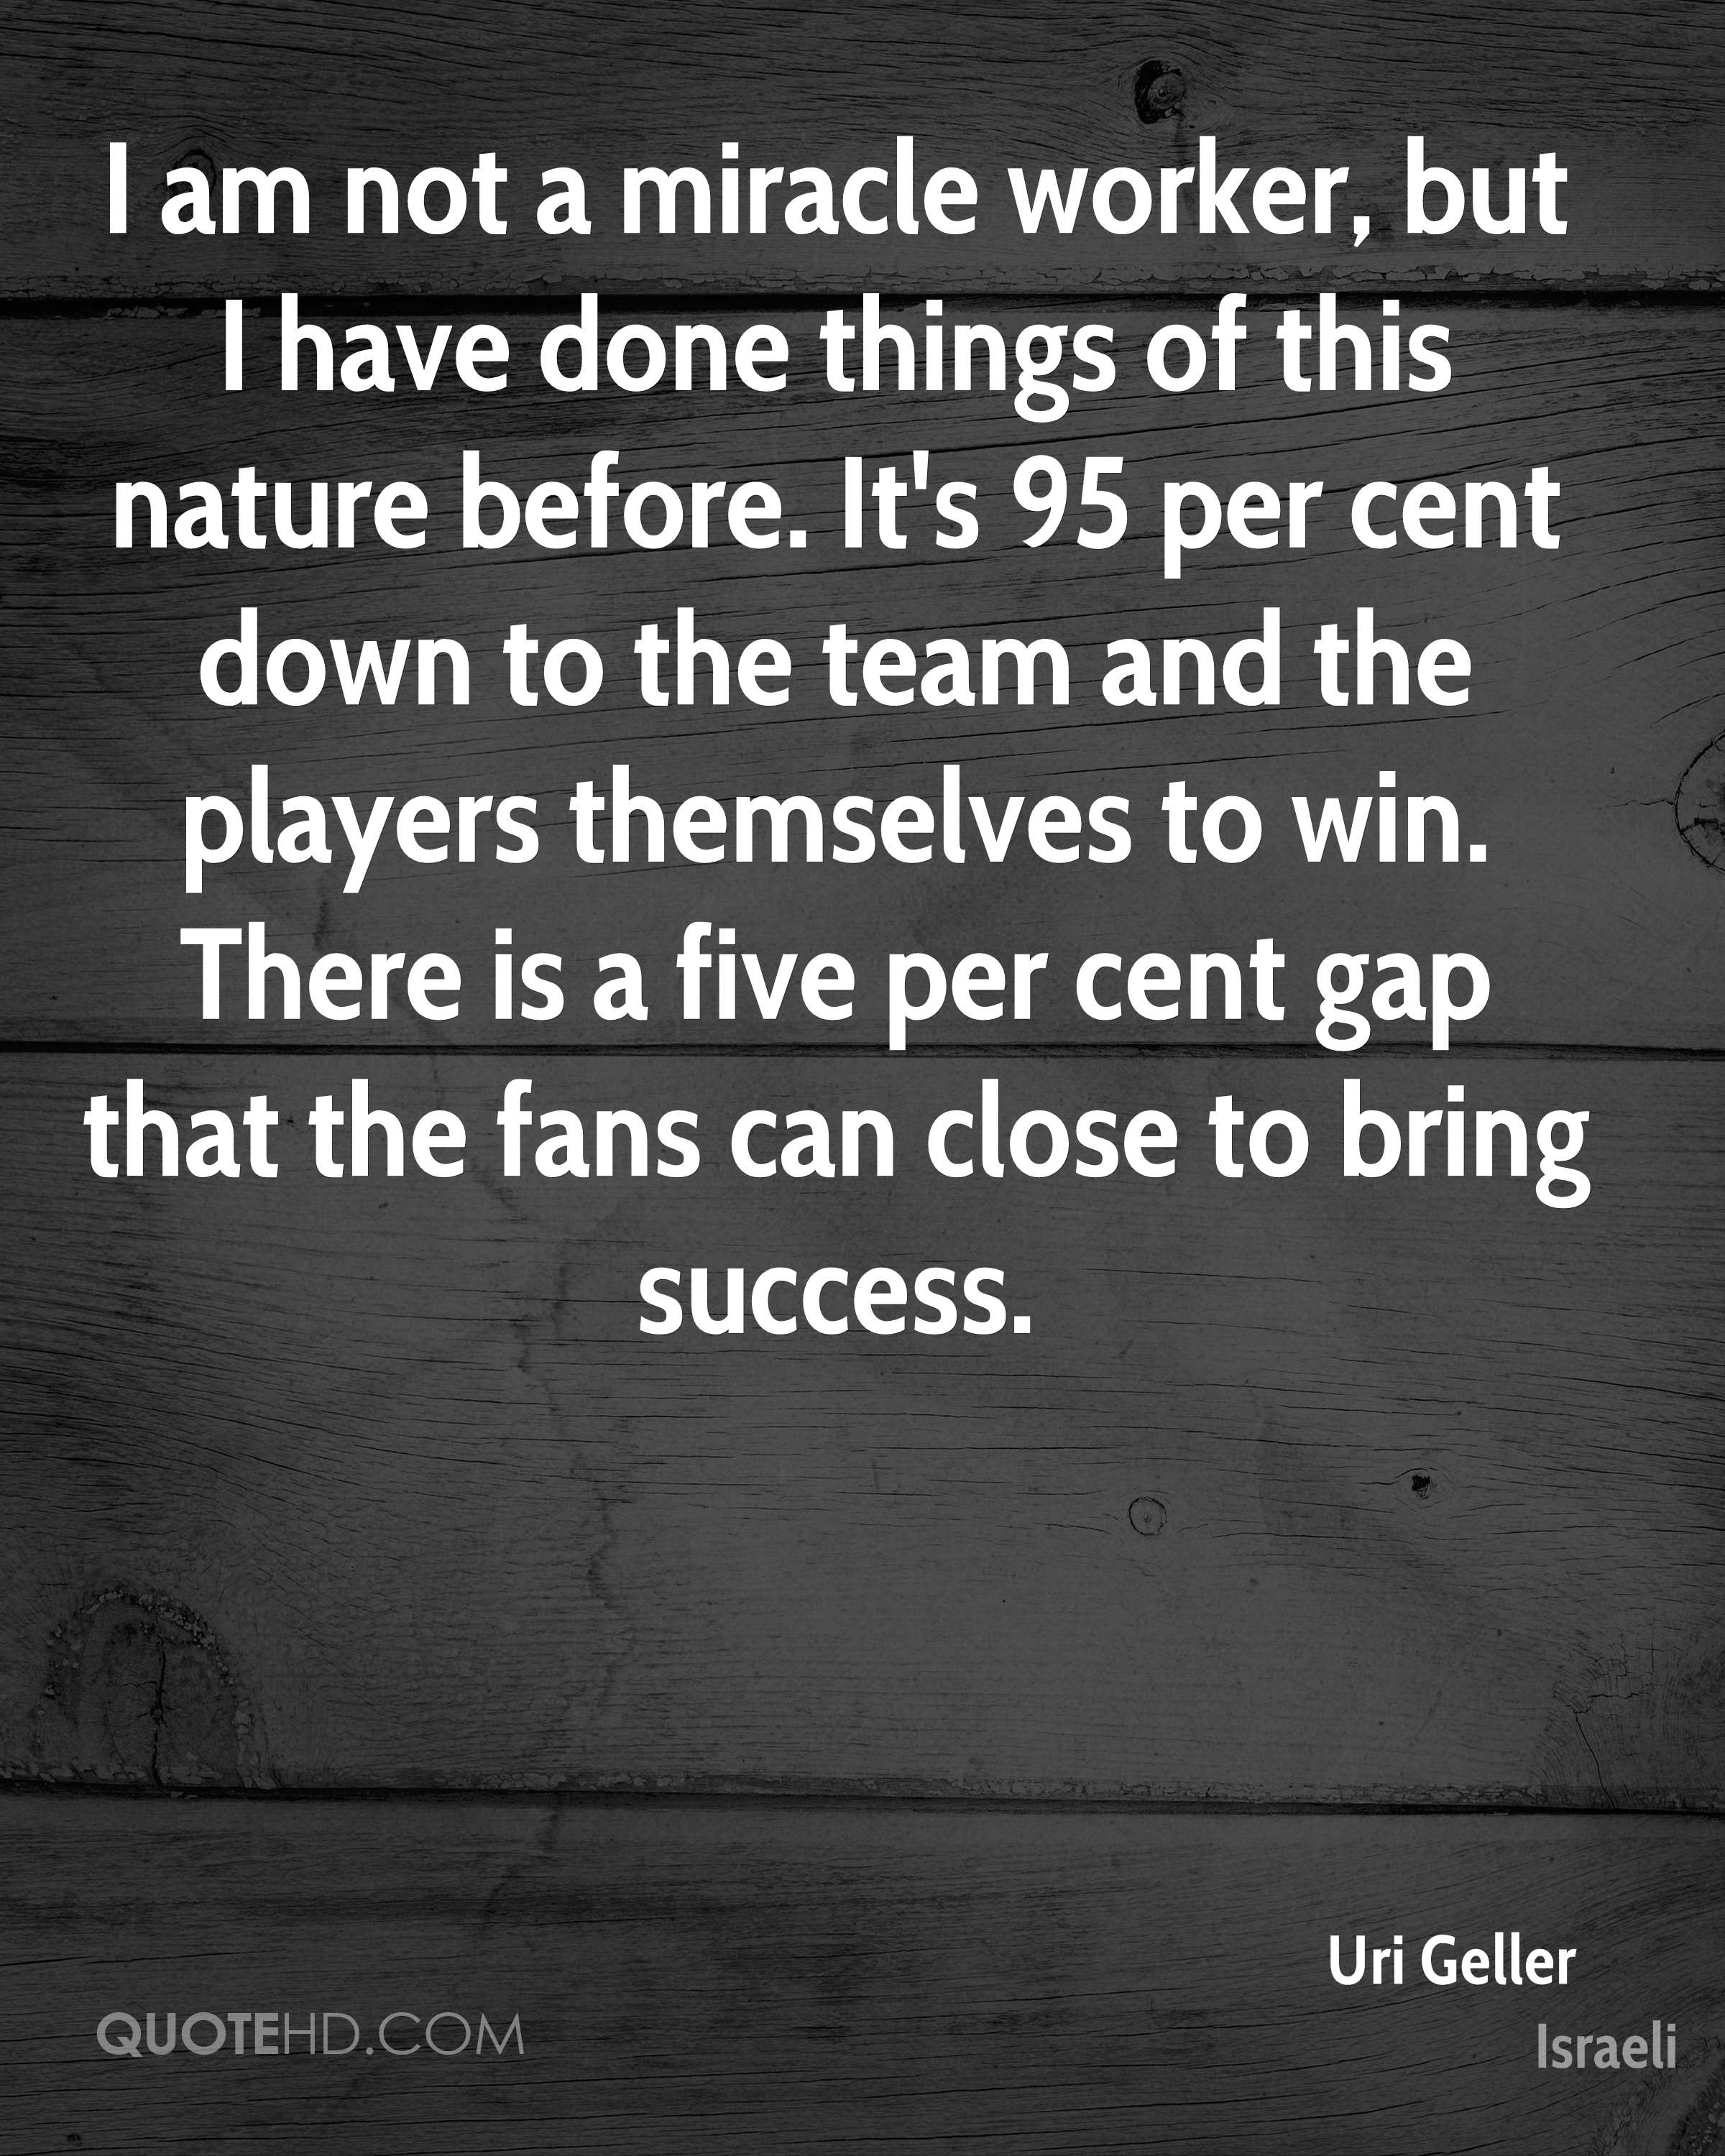 I am not a miracle worker, but I have done things of this nature before. It's 95 per cent down to the team and the players themselves to win. There is a five per cent gap that the fans can close to bring success.